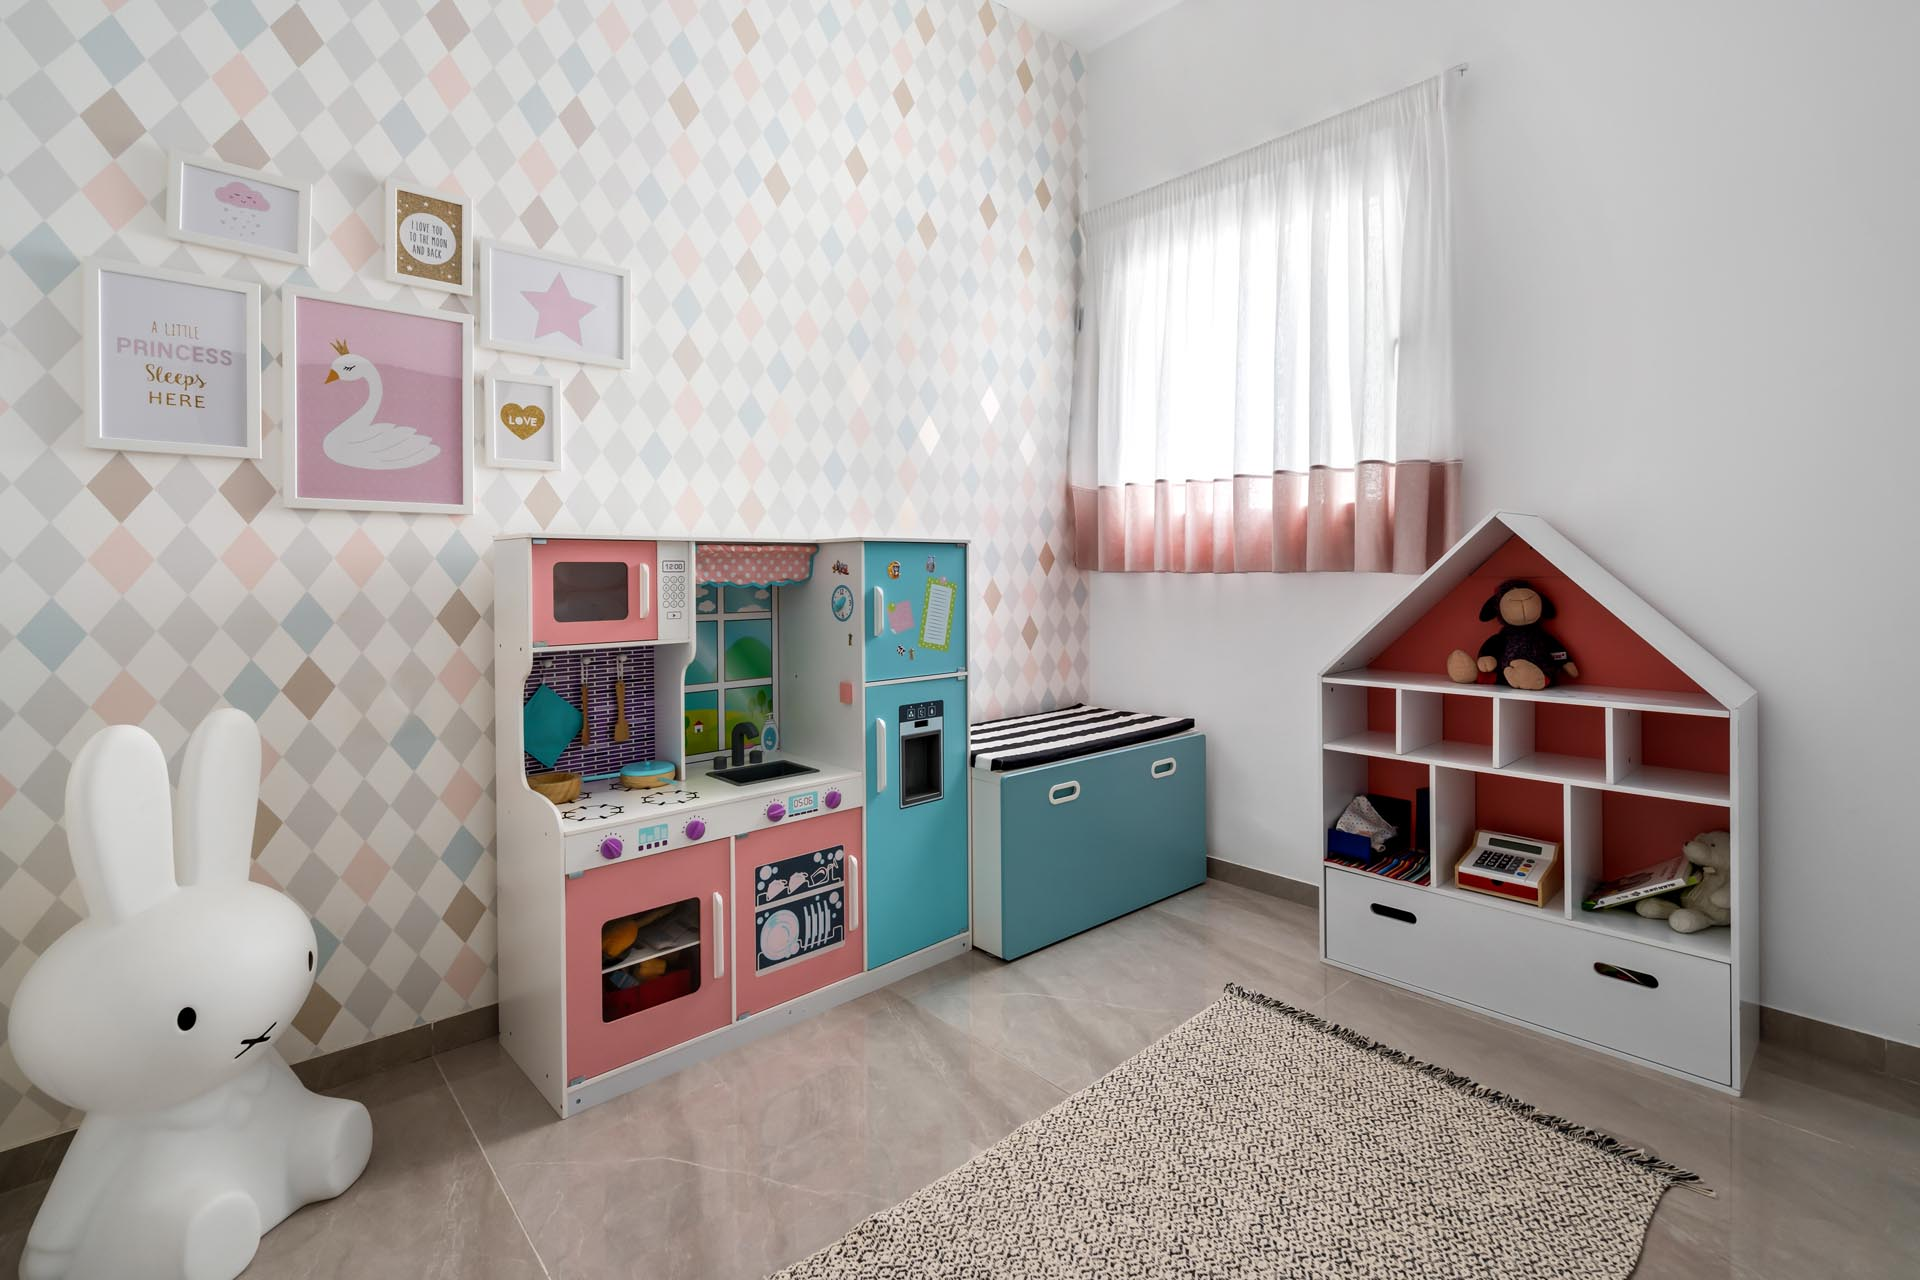 A modern playroom incorporates different shades of pink.